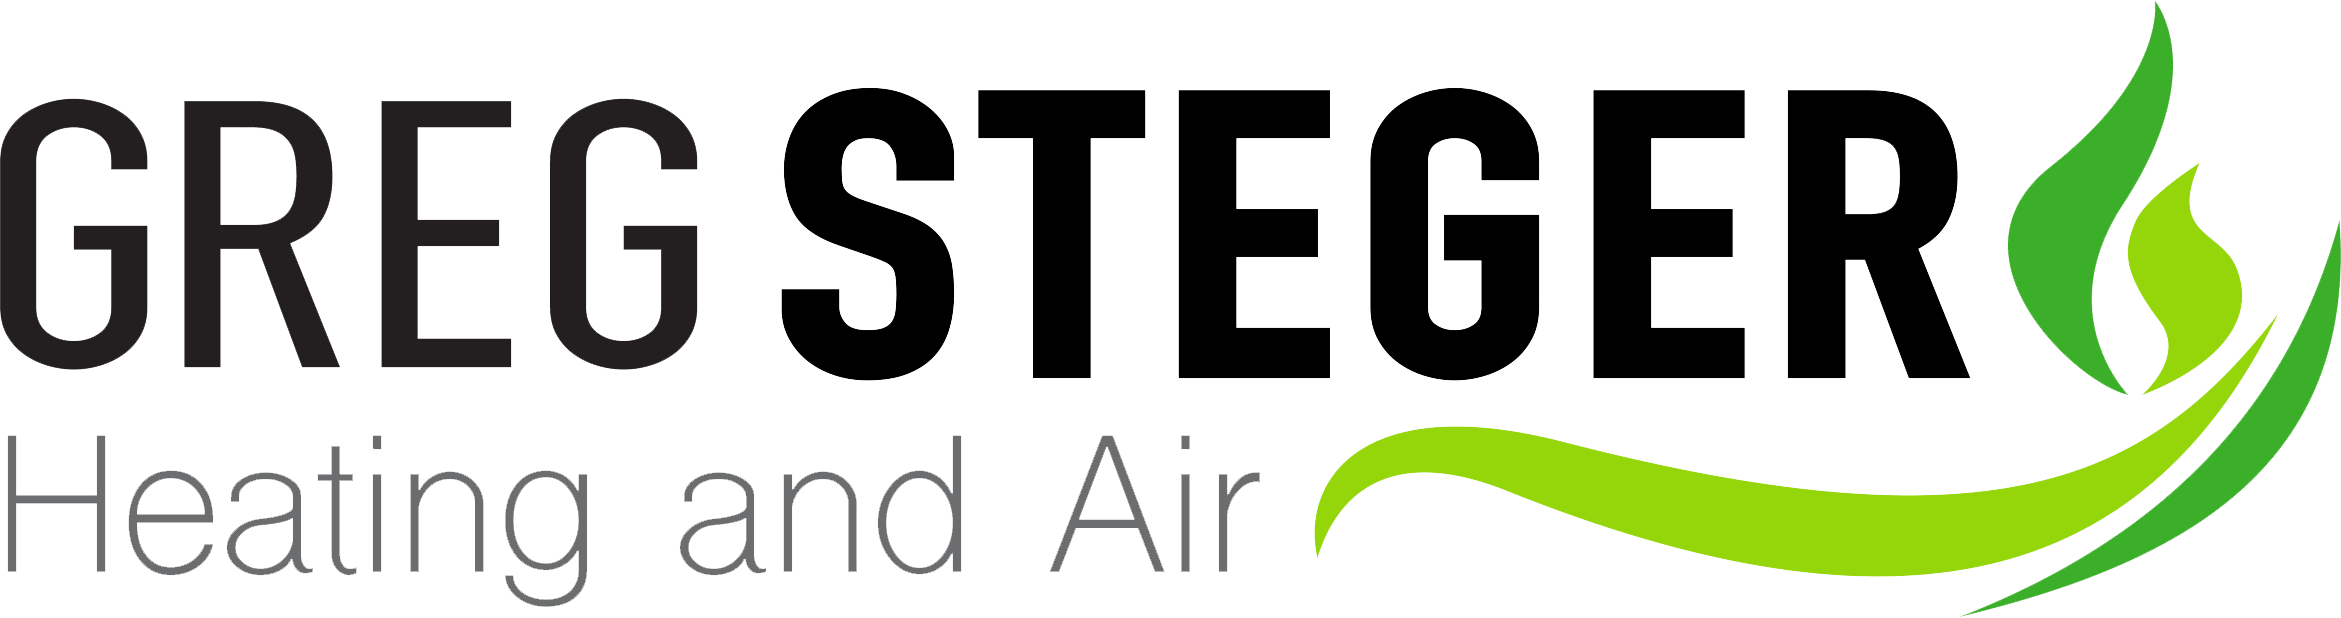 Greg Steger Heating and Air! Your go to for AC and Heat Pump repair in Sheboygan WI!